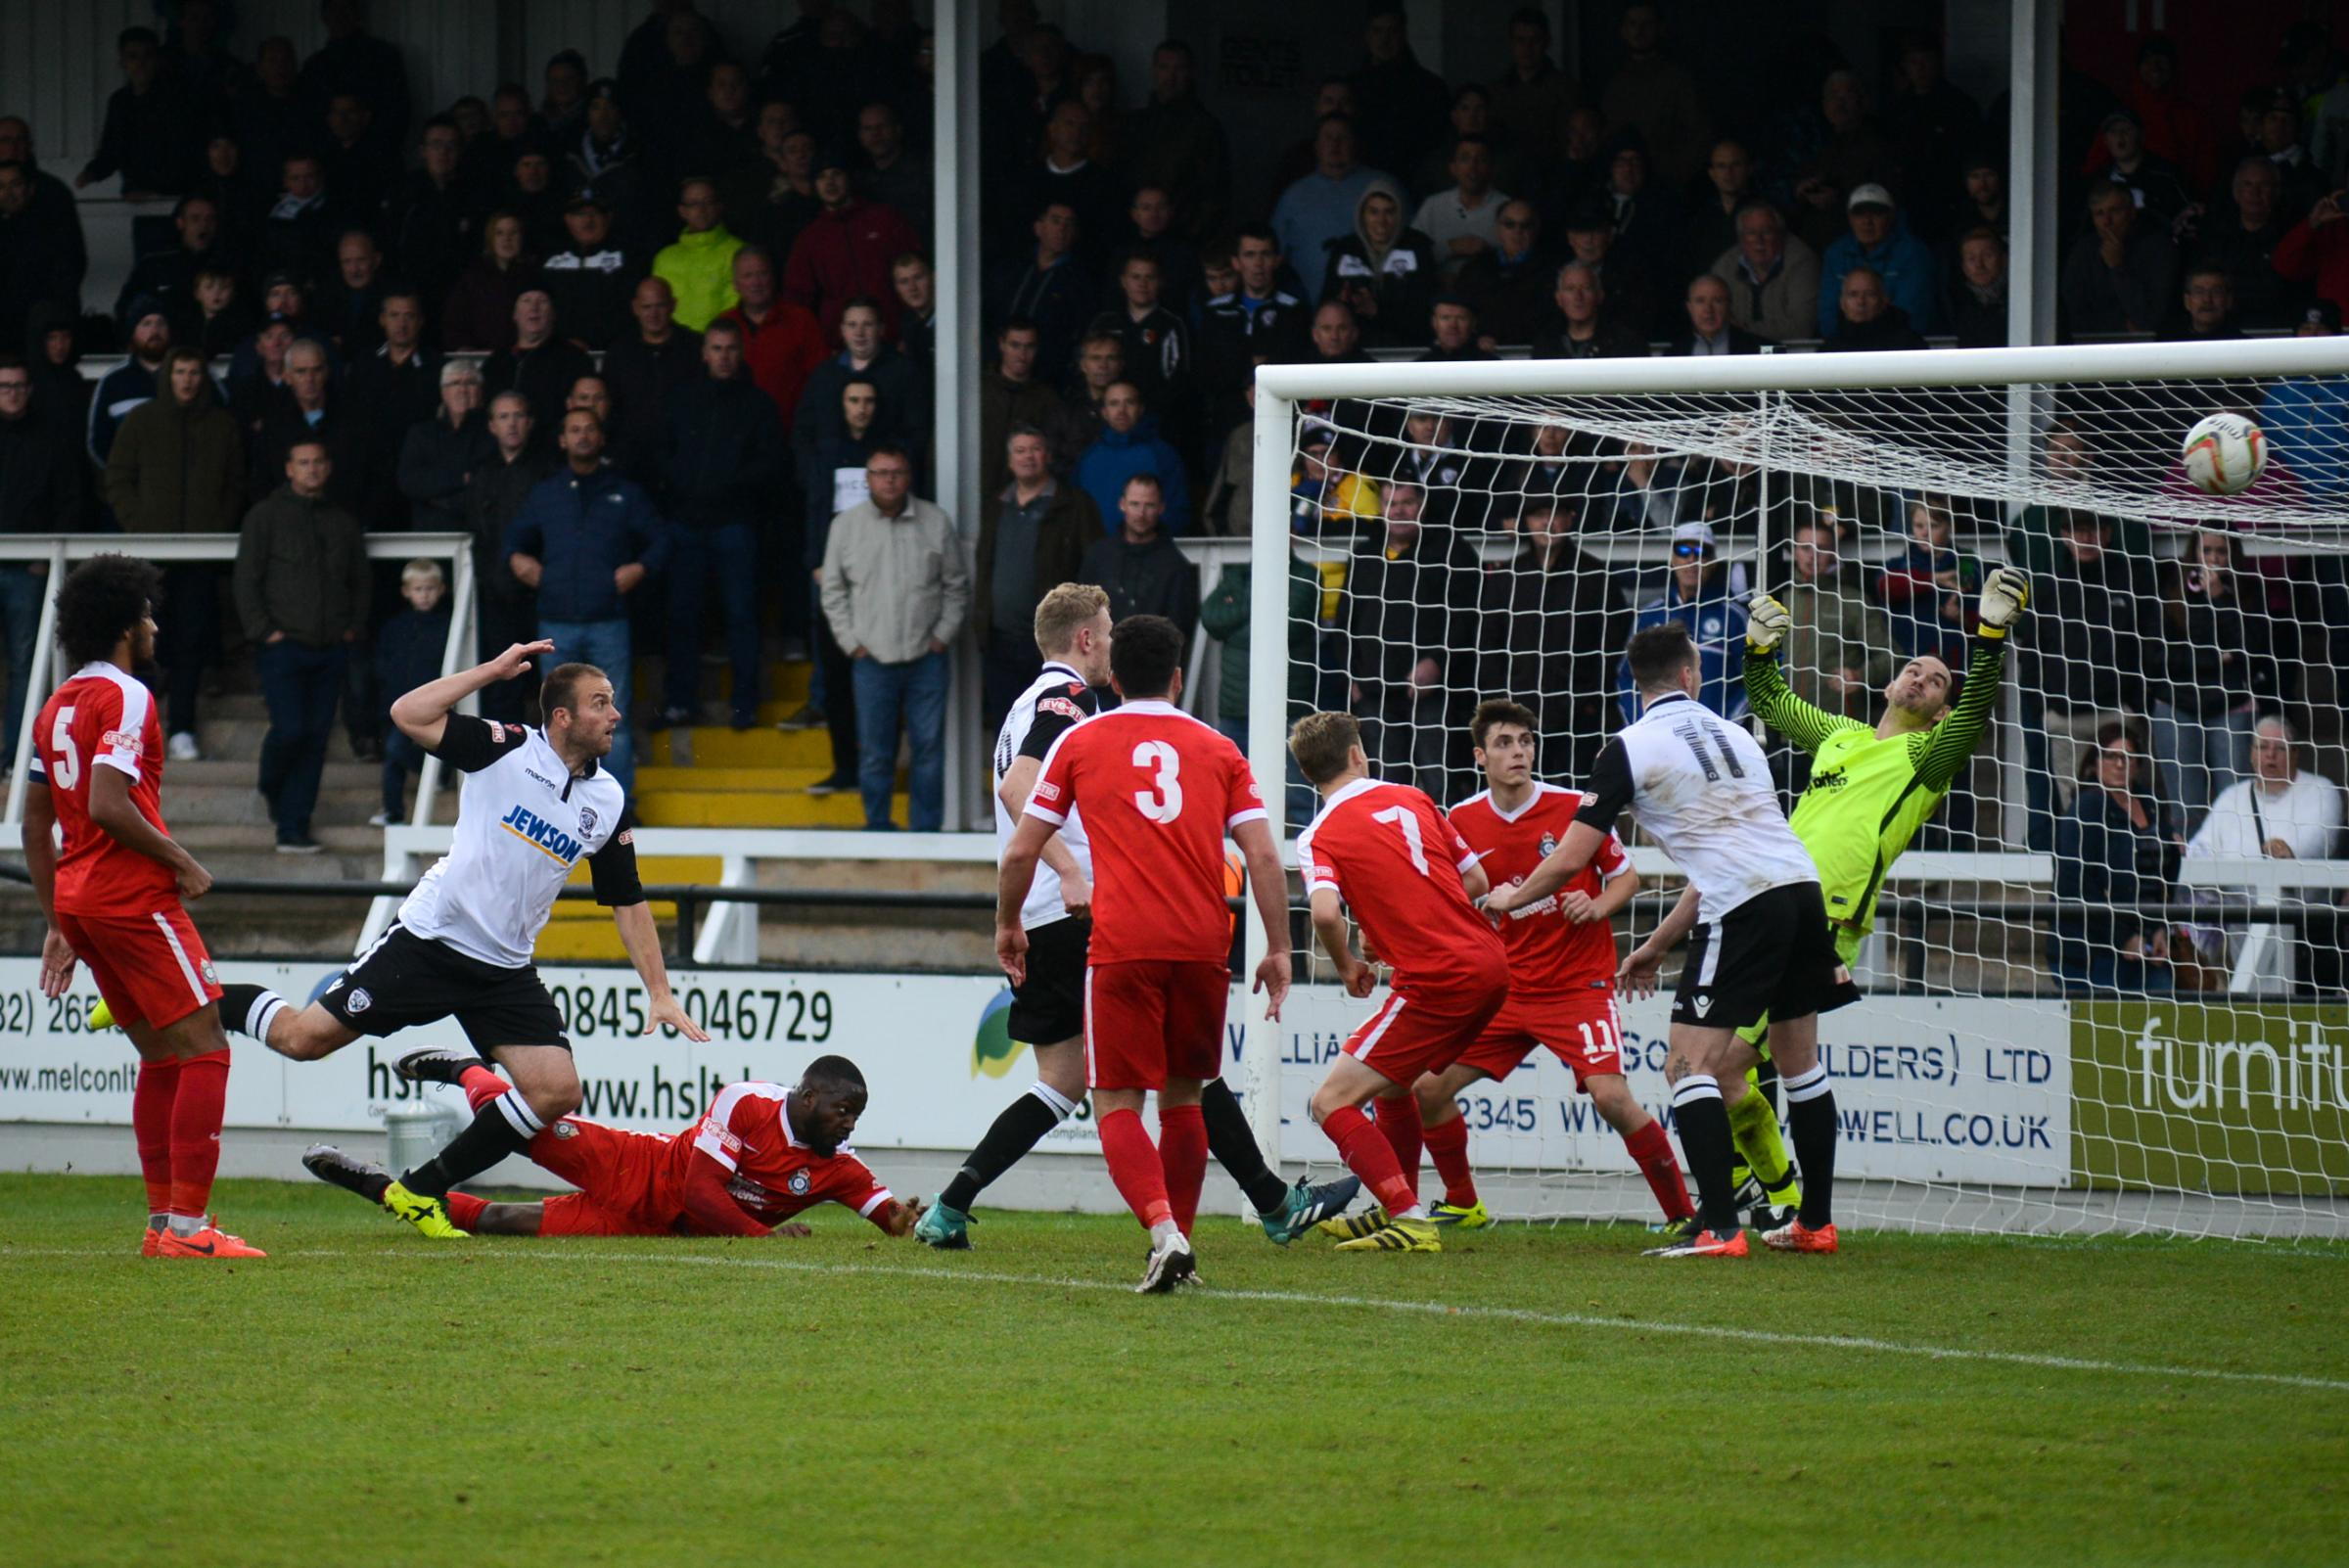 Mike Symons makes it 3-0 for Hereford against Kings Langley. Photo: James Maggs